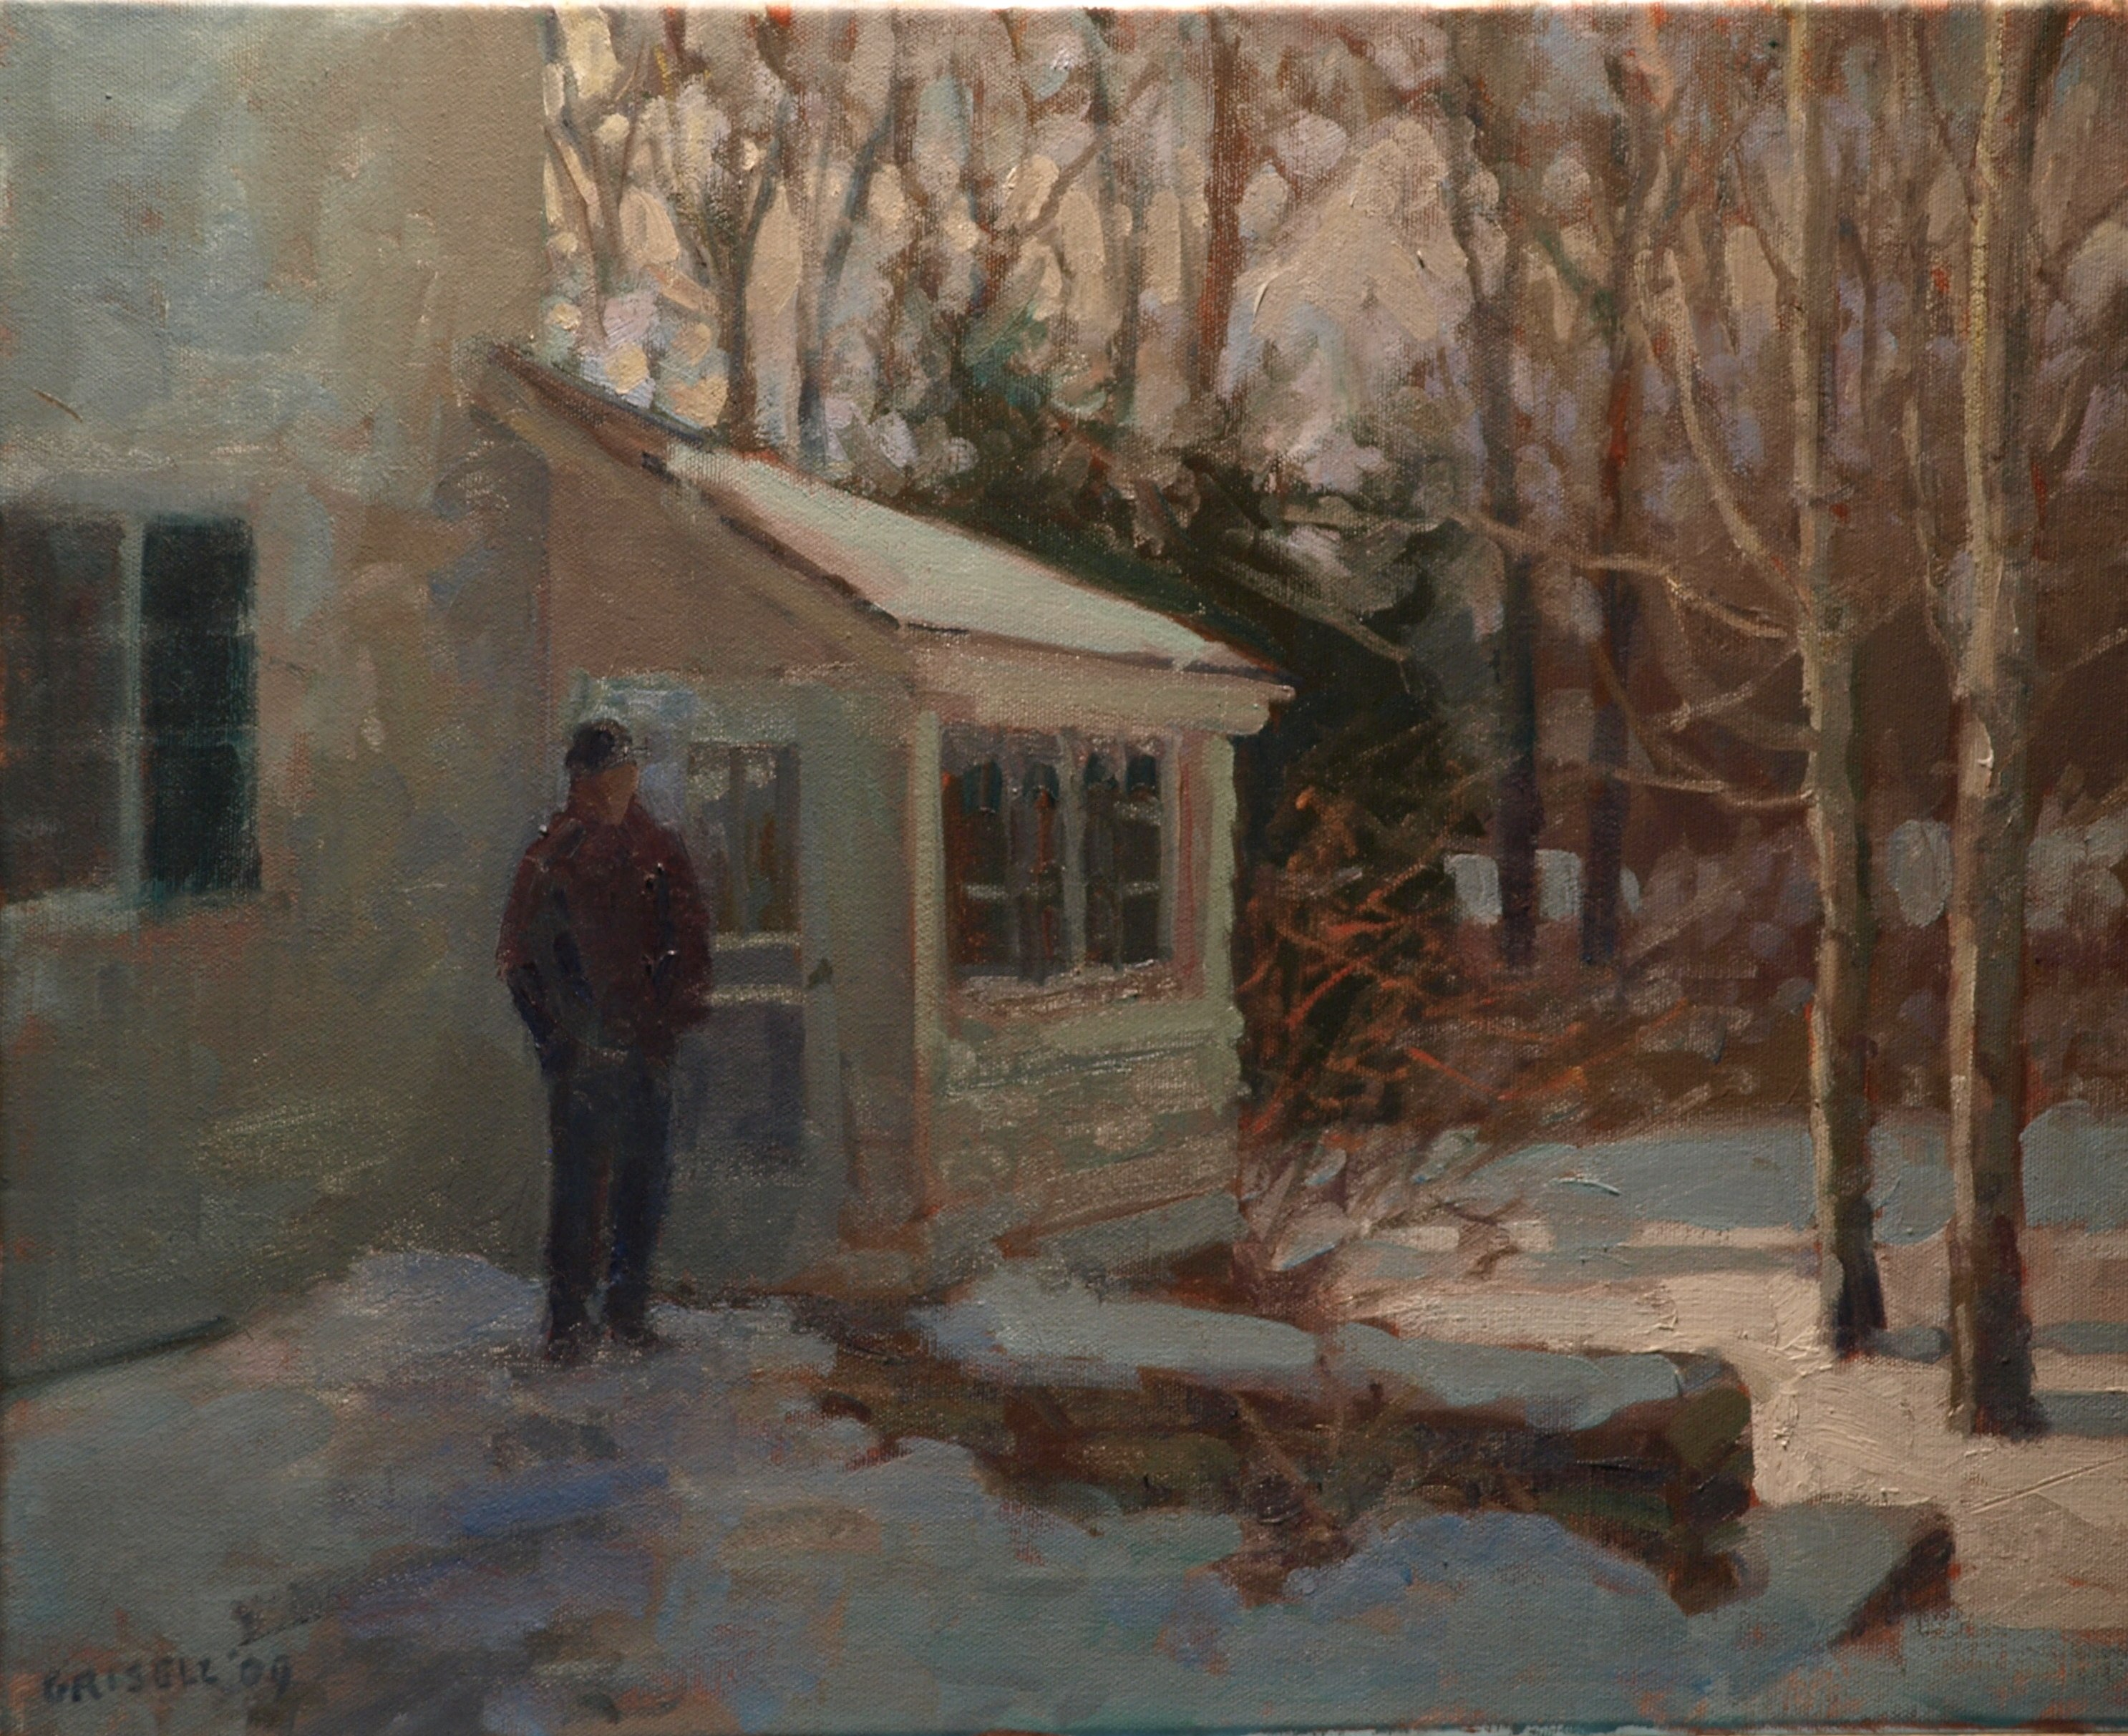 Bill's House, Oil on Canvas, 16 x 20 Inches, by Susan Grisell, $425